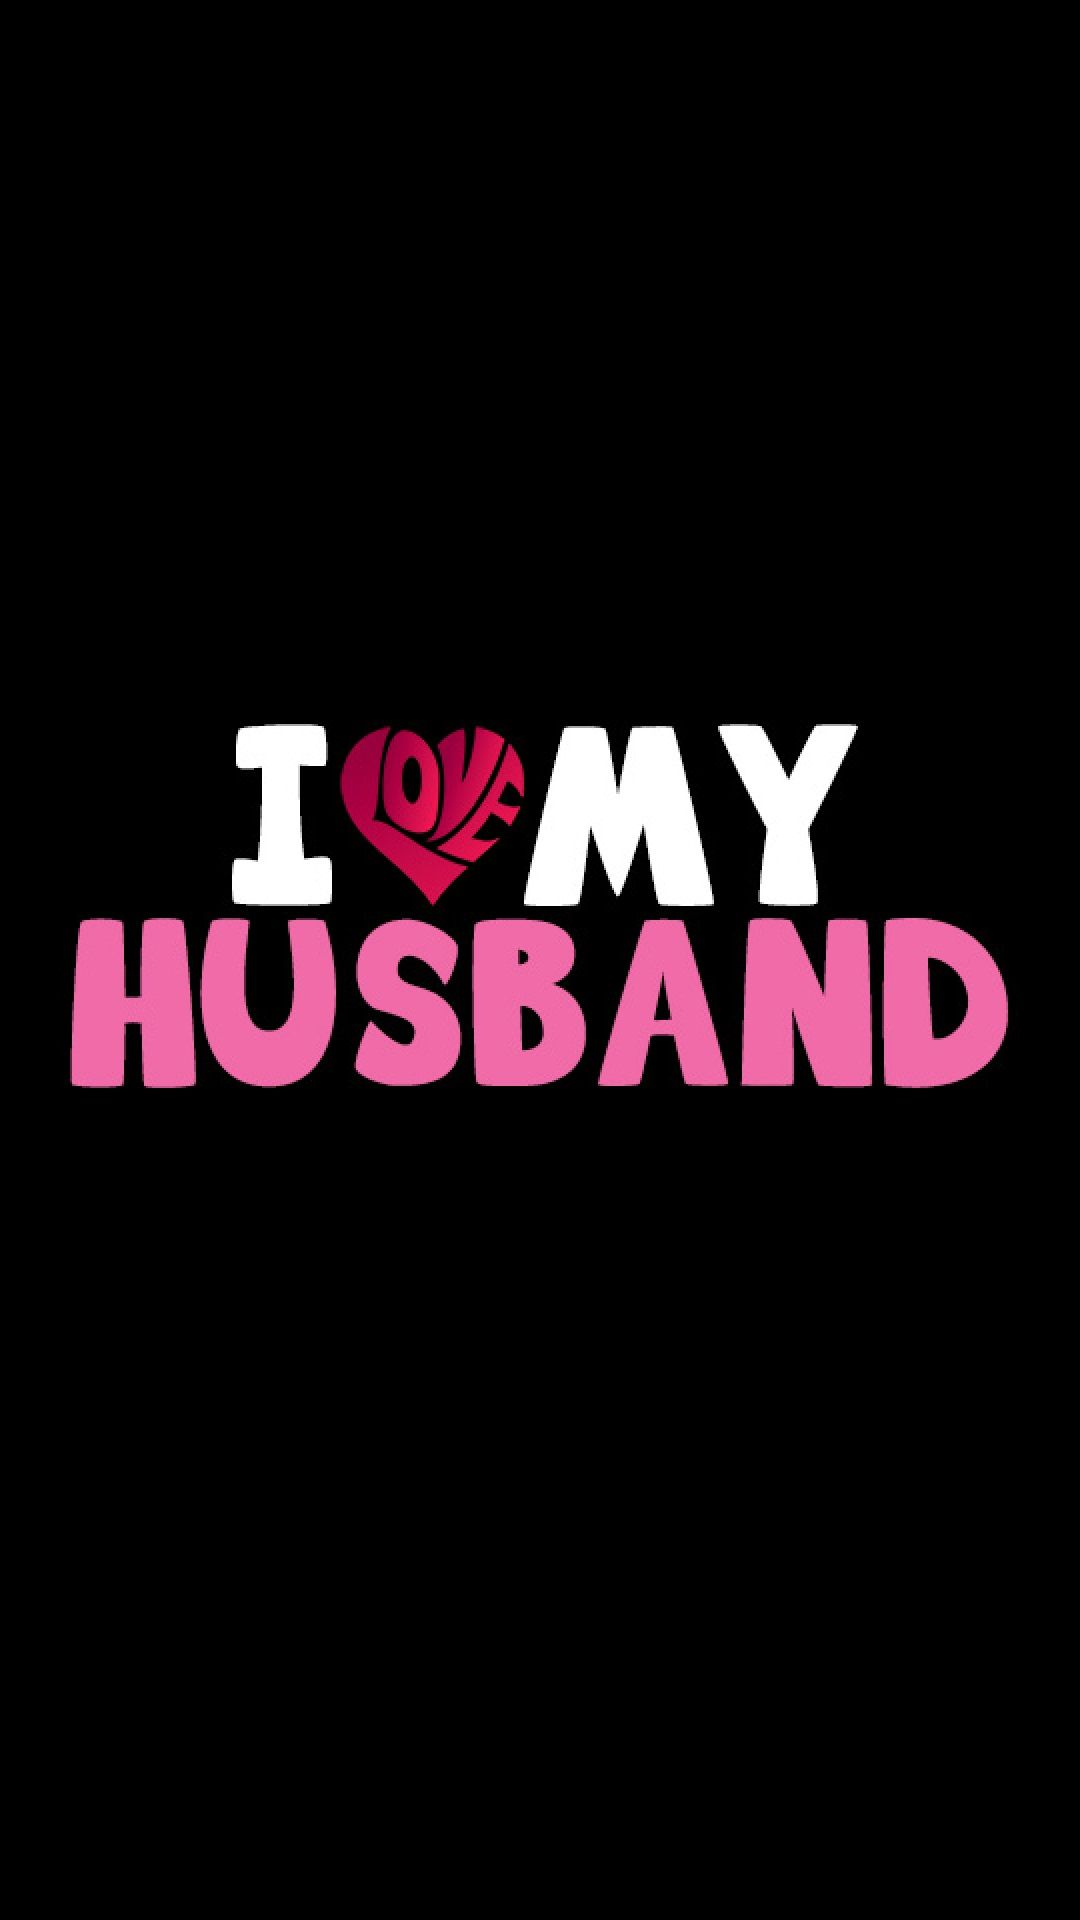 I Love My Husband Words Sayings In 2019 Love My Husband Husband